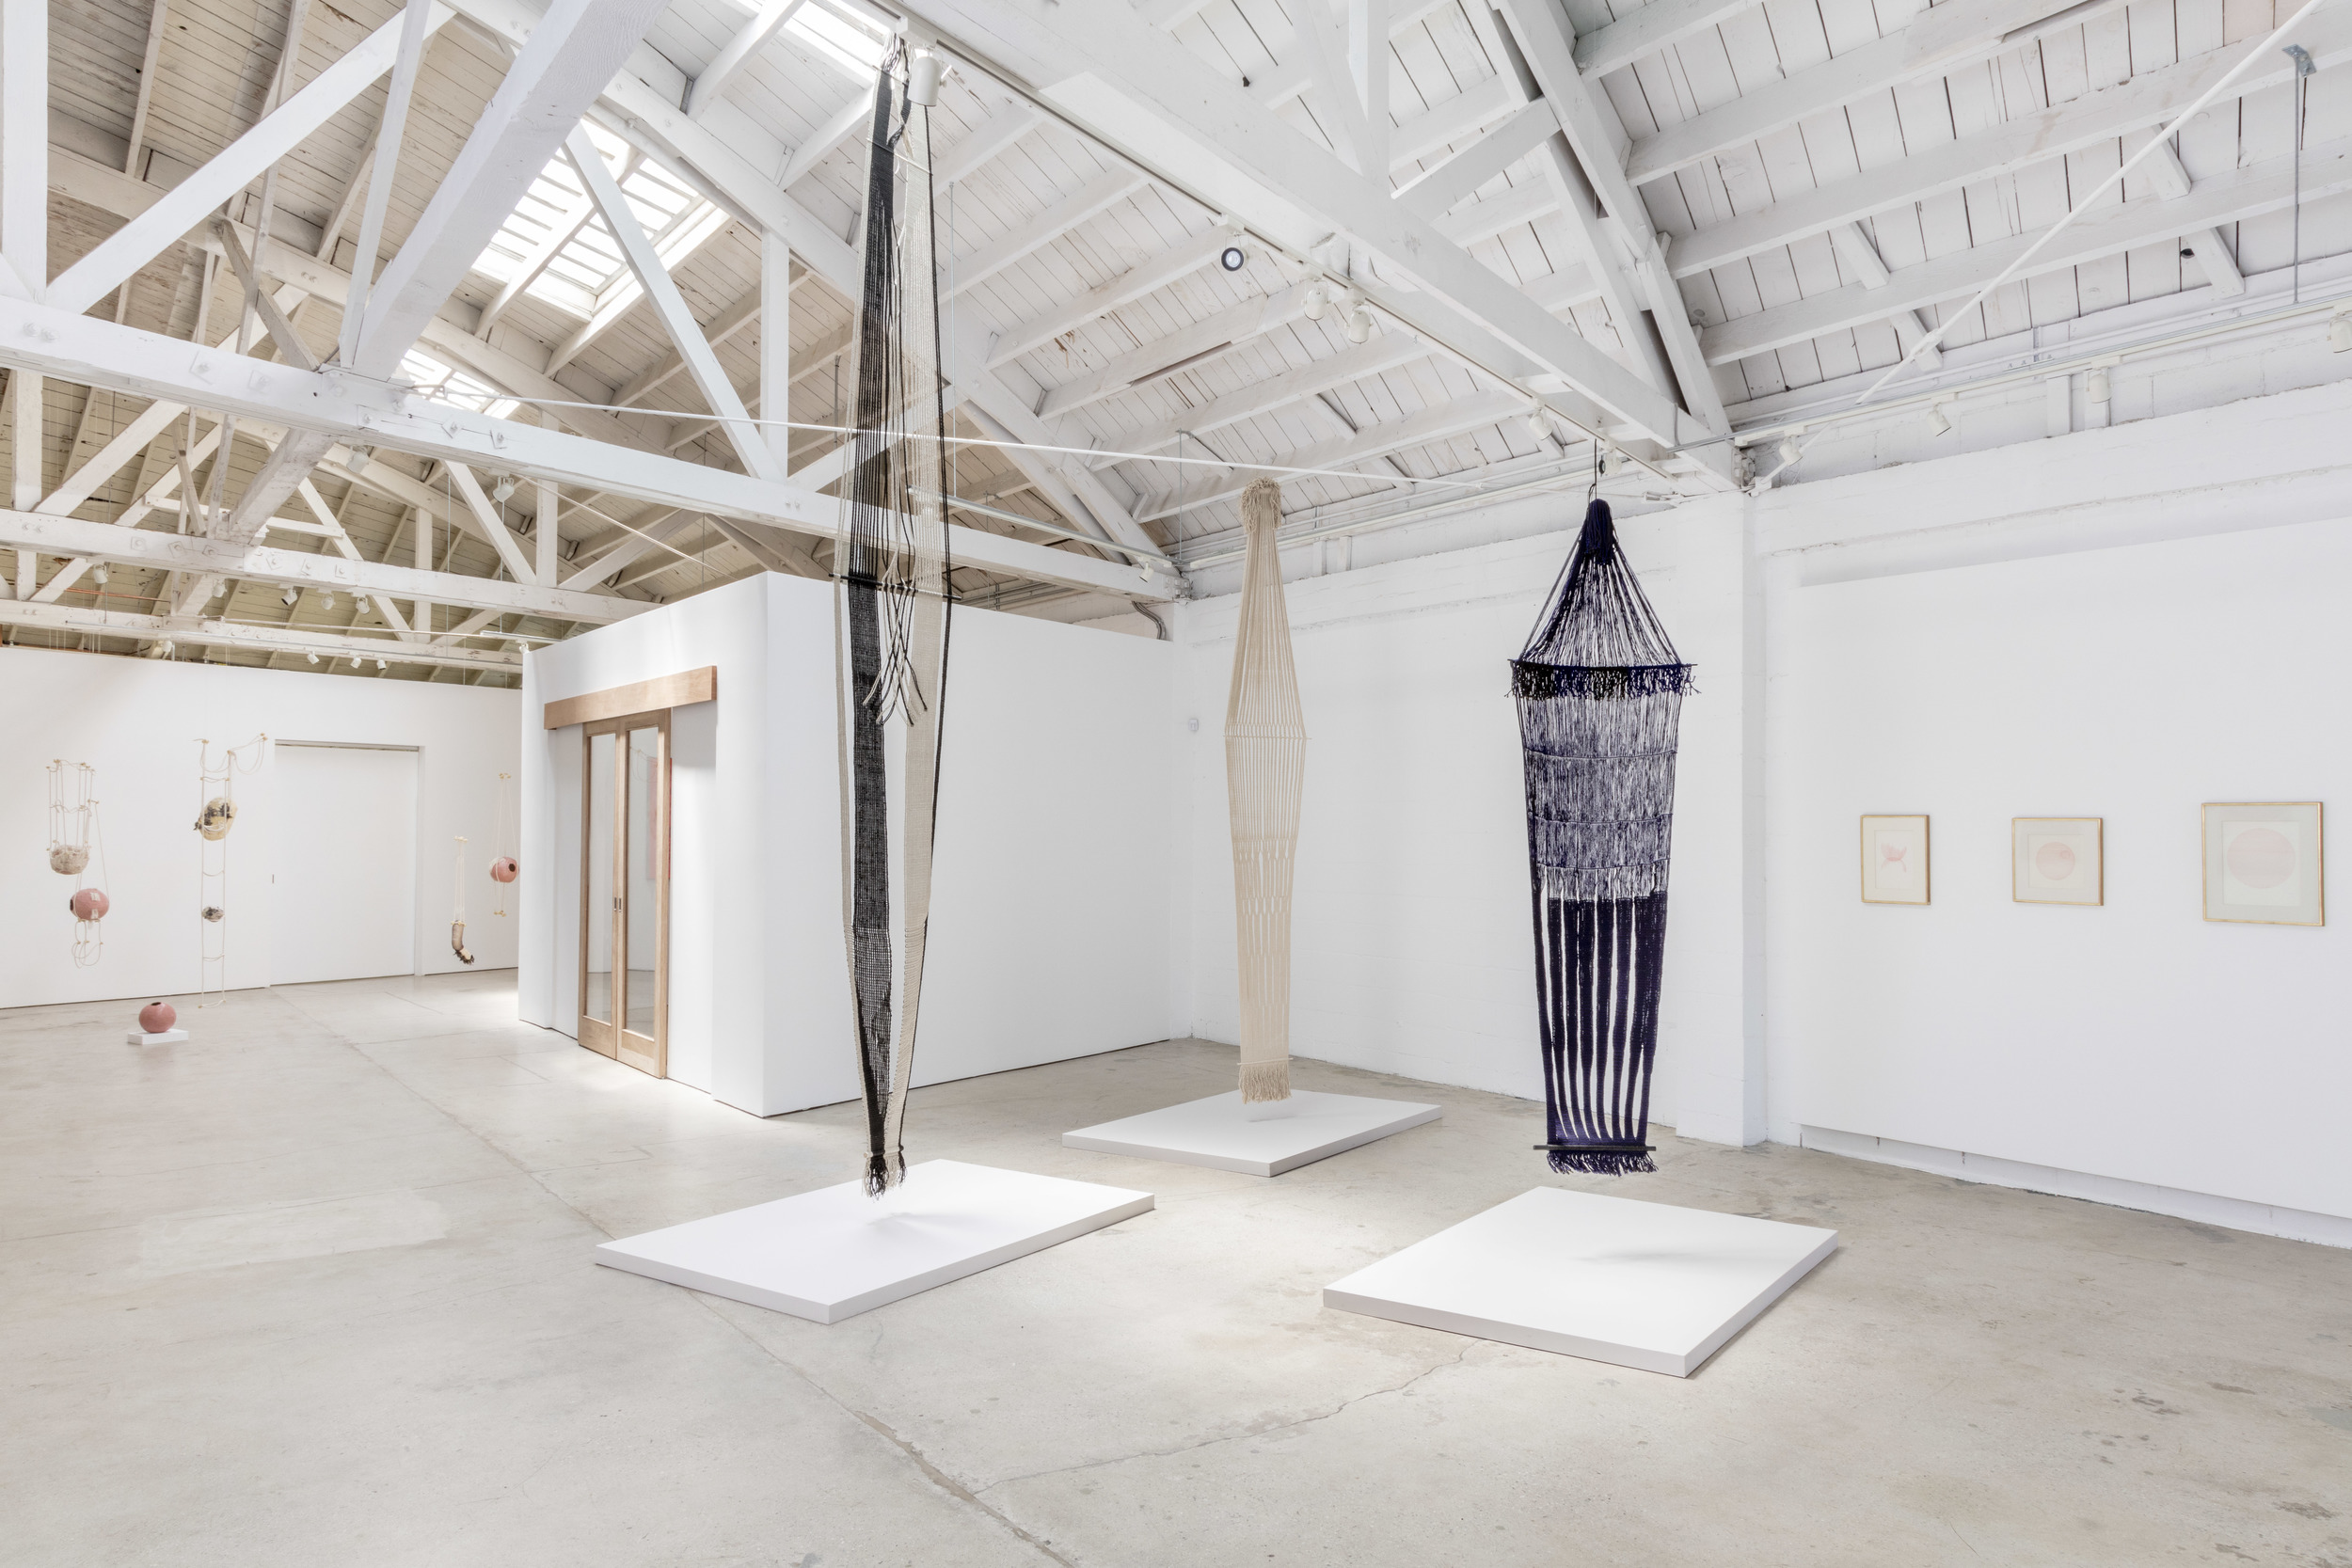 3 Women (July 23 - September 17, 2016)    installation view (Tanya Aguiniga and Lenore Tawney)    Joshua White/JW Pictures, courtesy of the Landing, Los Angeles